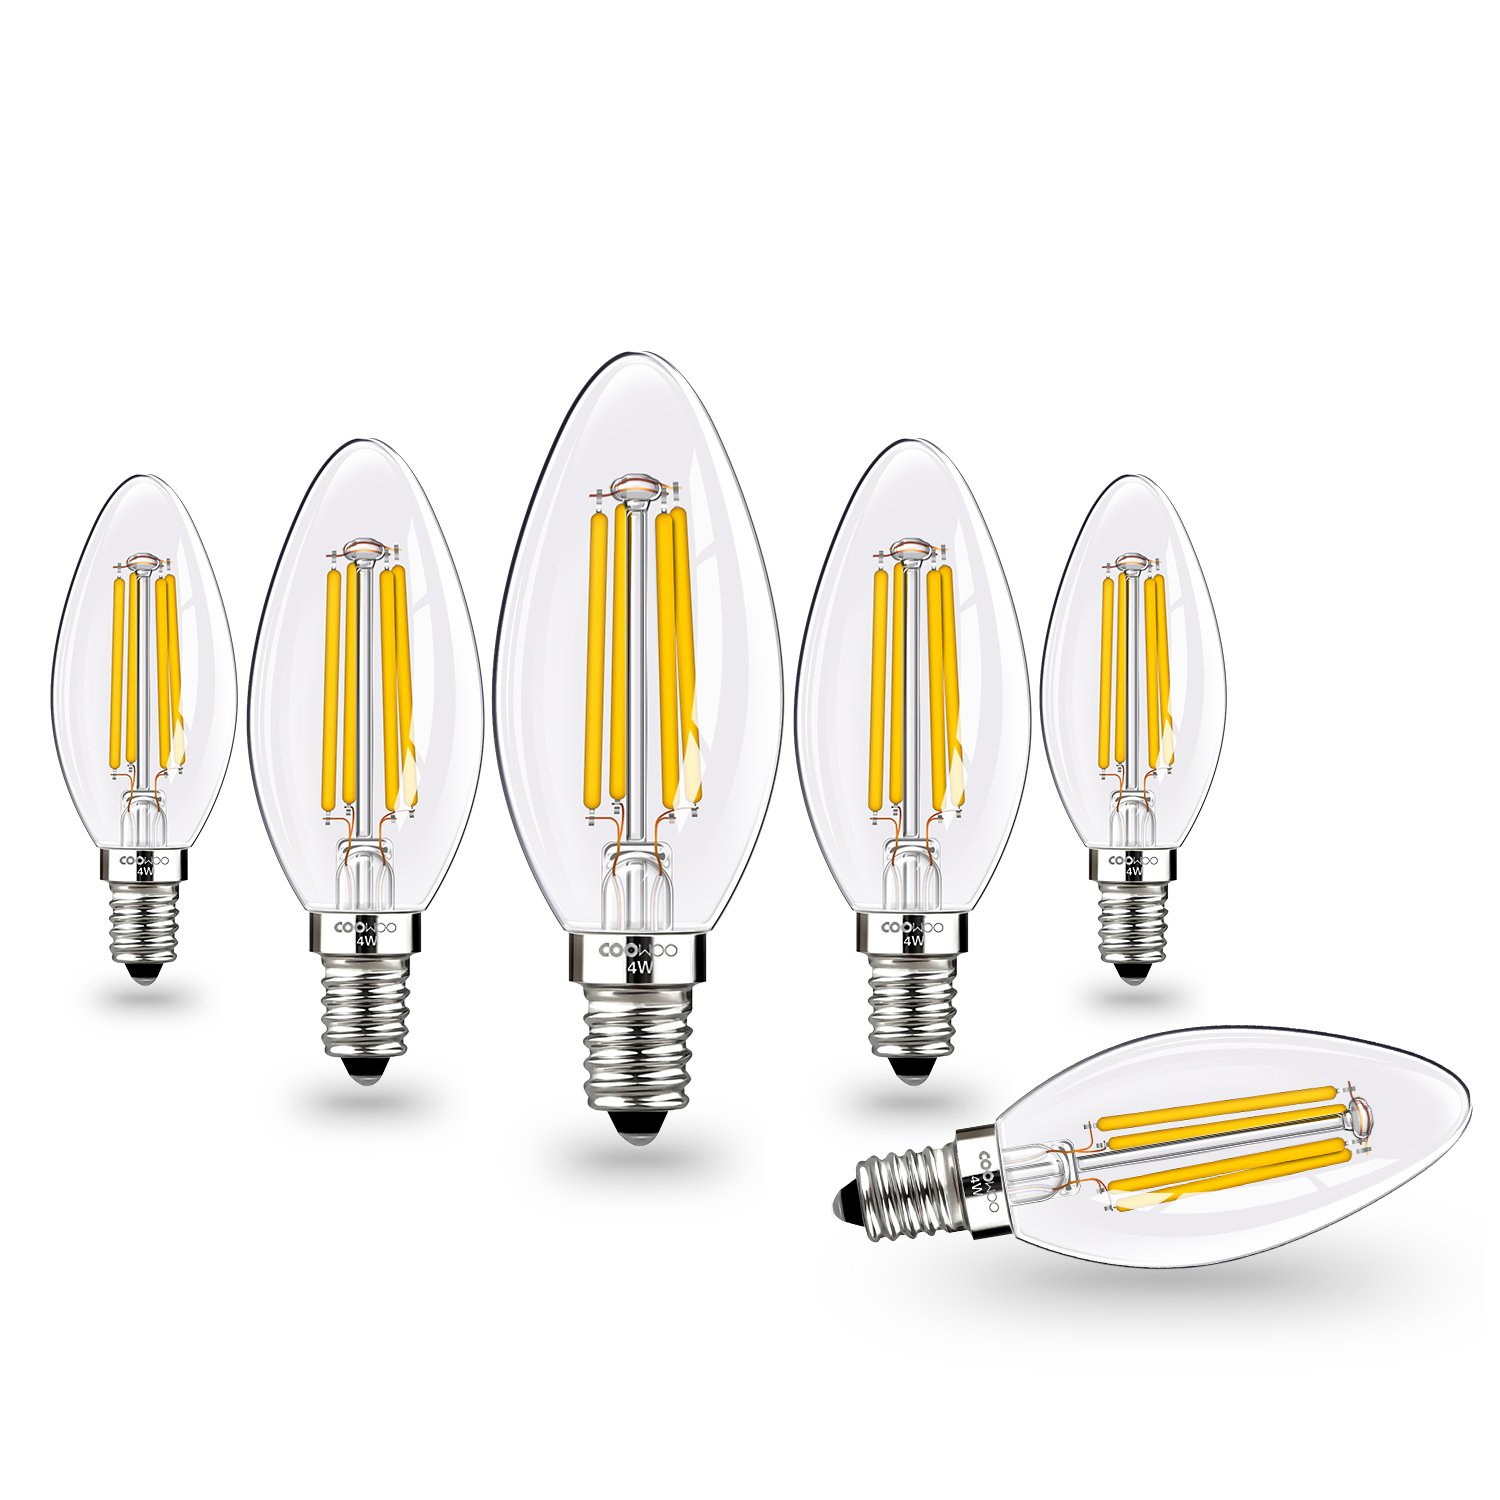 Vintage Candelabra Led Light Bulbs With E12 Base 40w Equivalent Halogen Replacement Warm White 4w Filament Candle 420 Lumen 6 Packs By